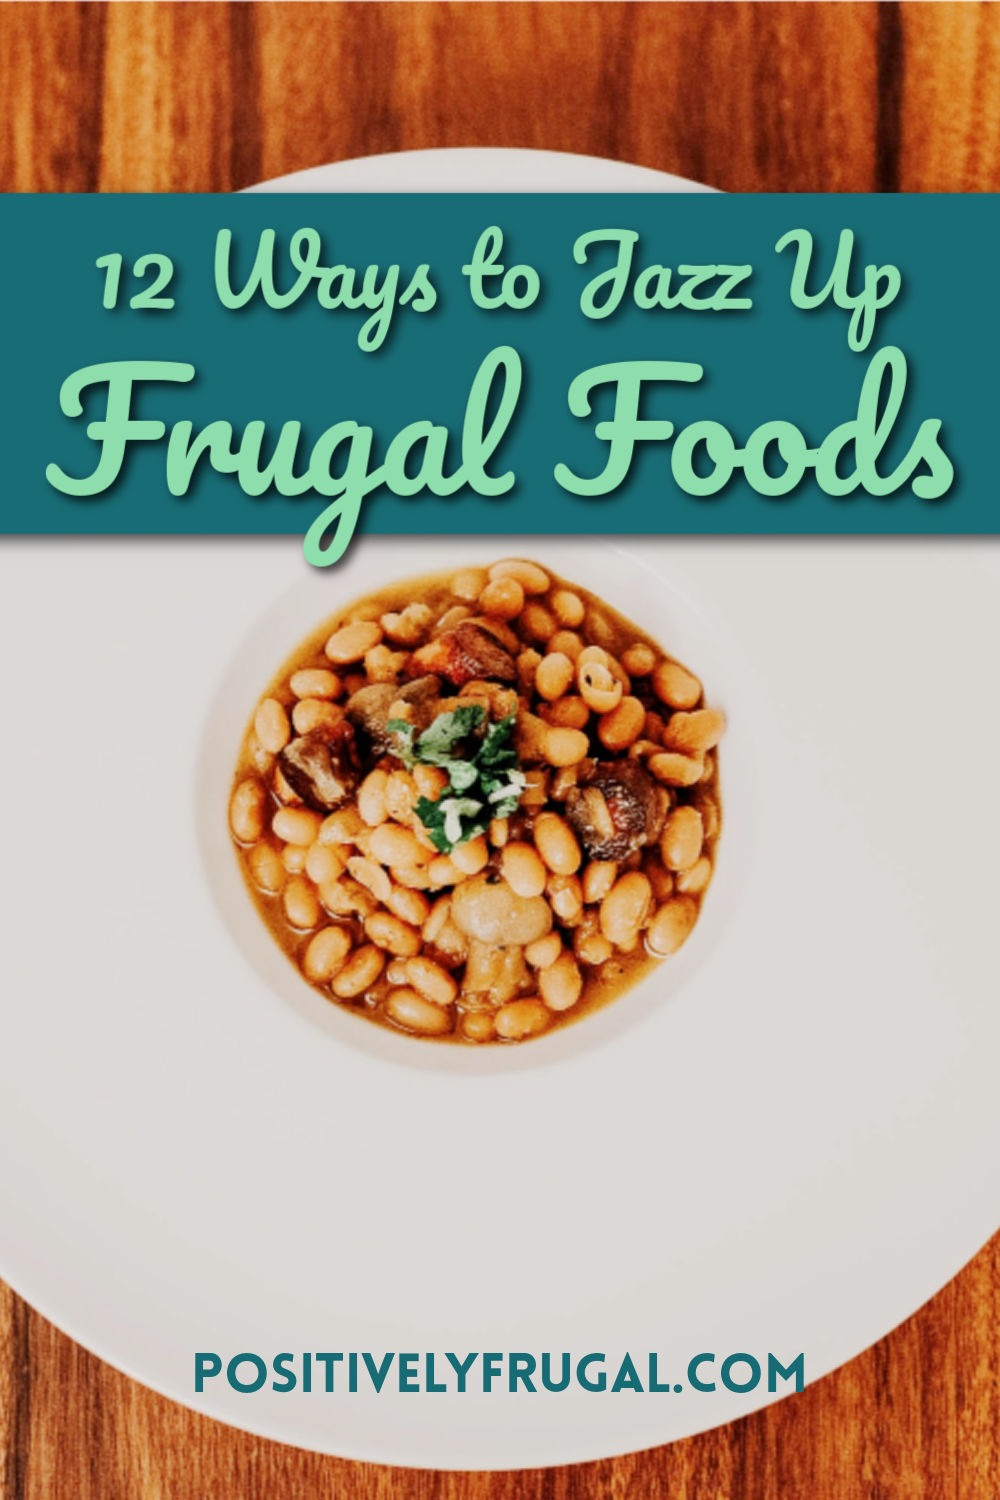 Ways to Jazz Up Frugal Foods by PositivelyFrugal.com